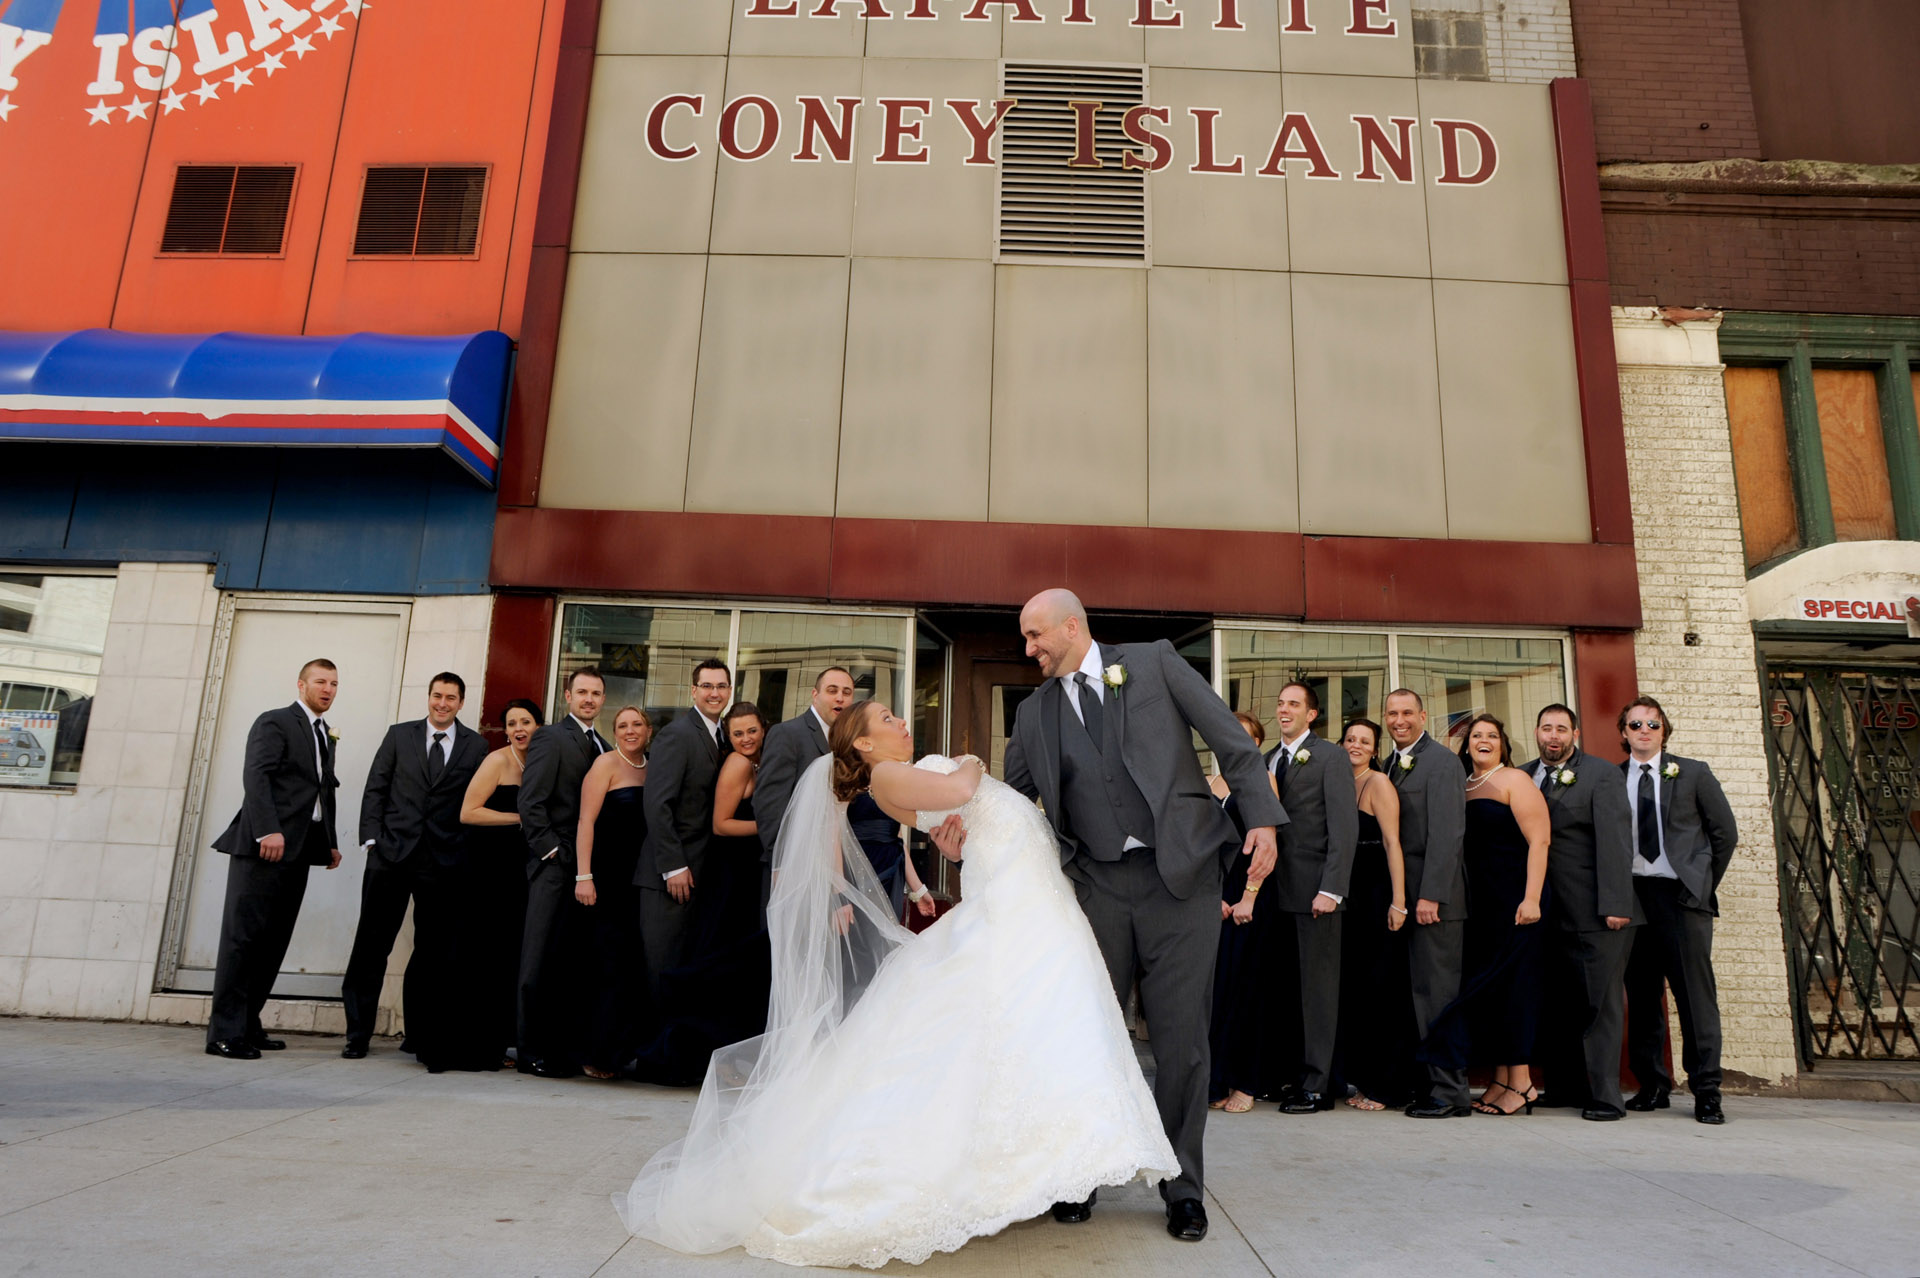 Detroit, Michigan wedding photographer's photo of the wedding party in front of Lafayette Coney Island in Detroit, Michigan when the bride grabs her dress fearing she's exposing herself. She wasn't!